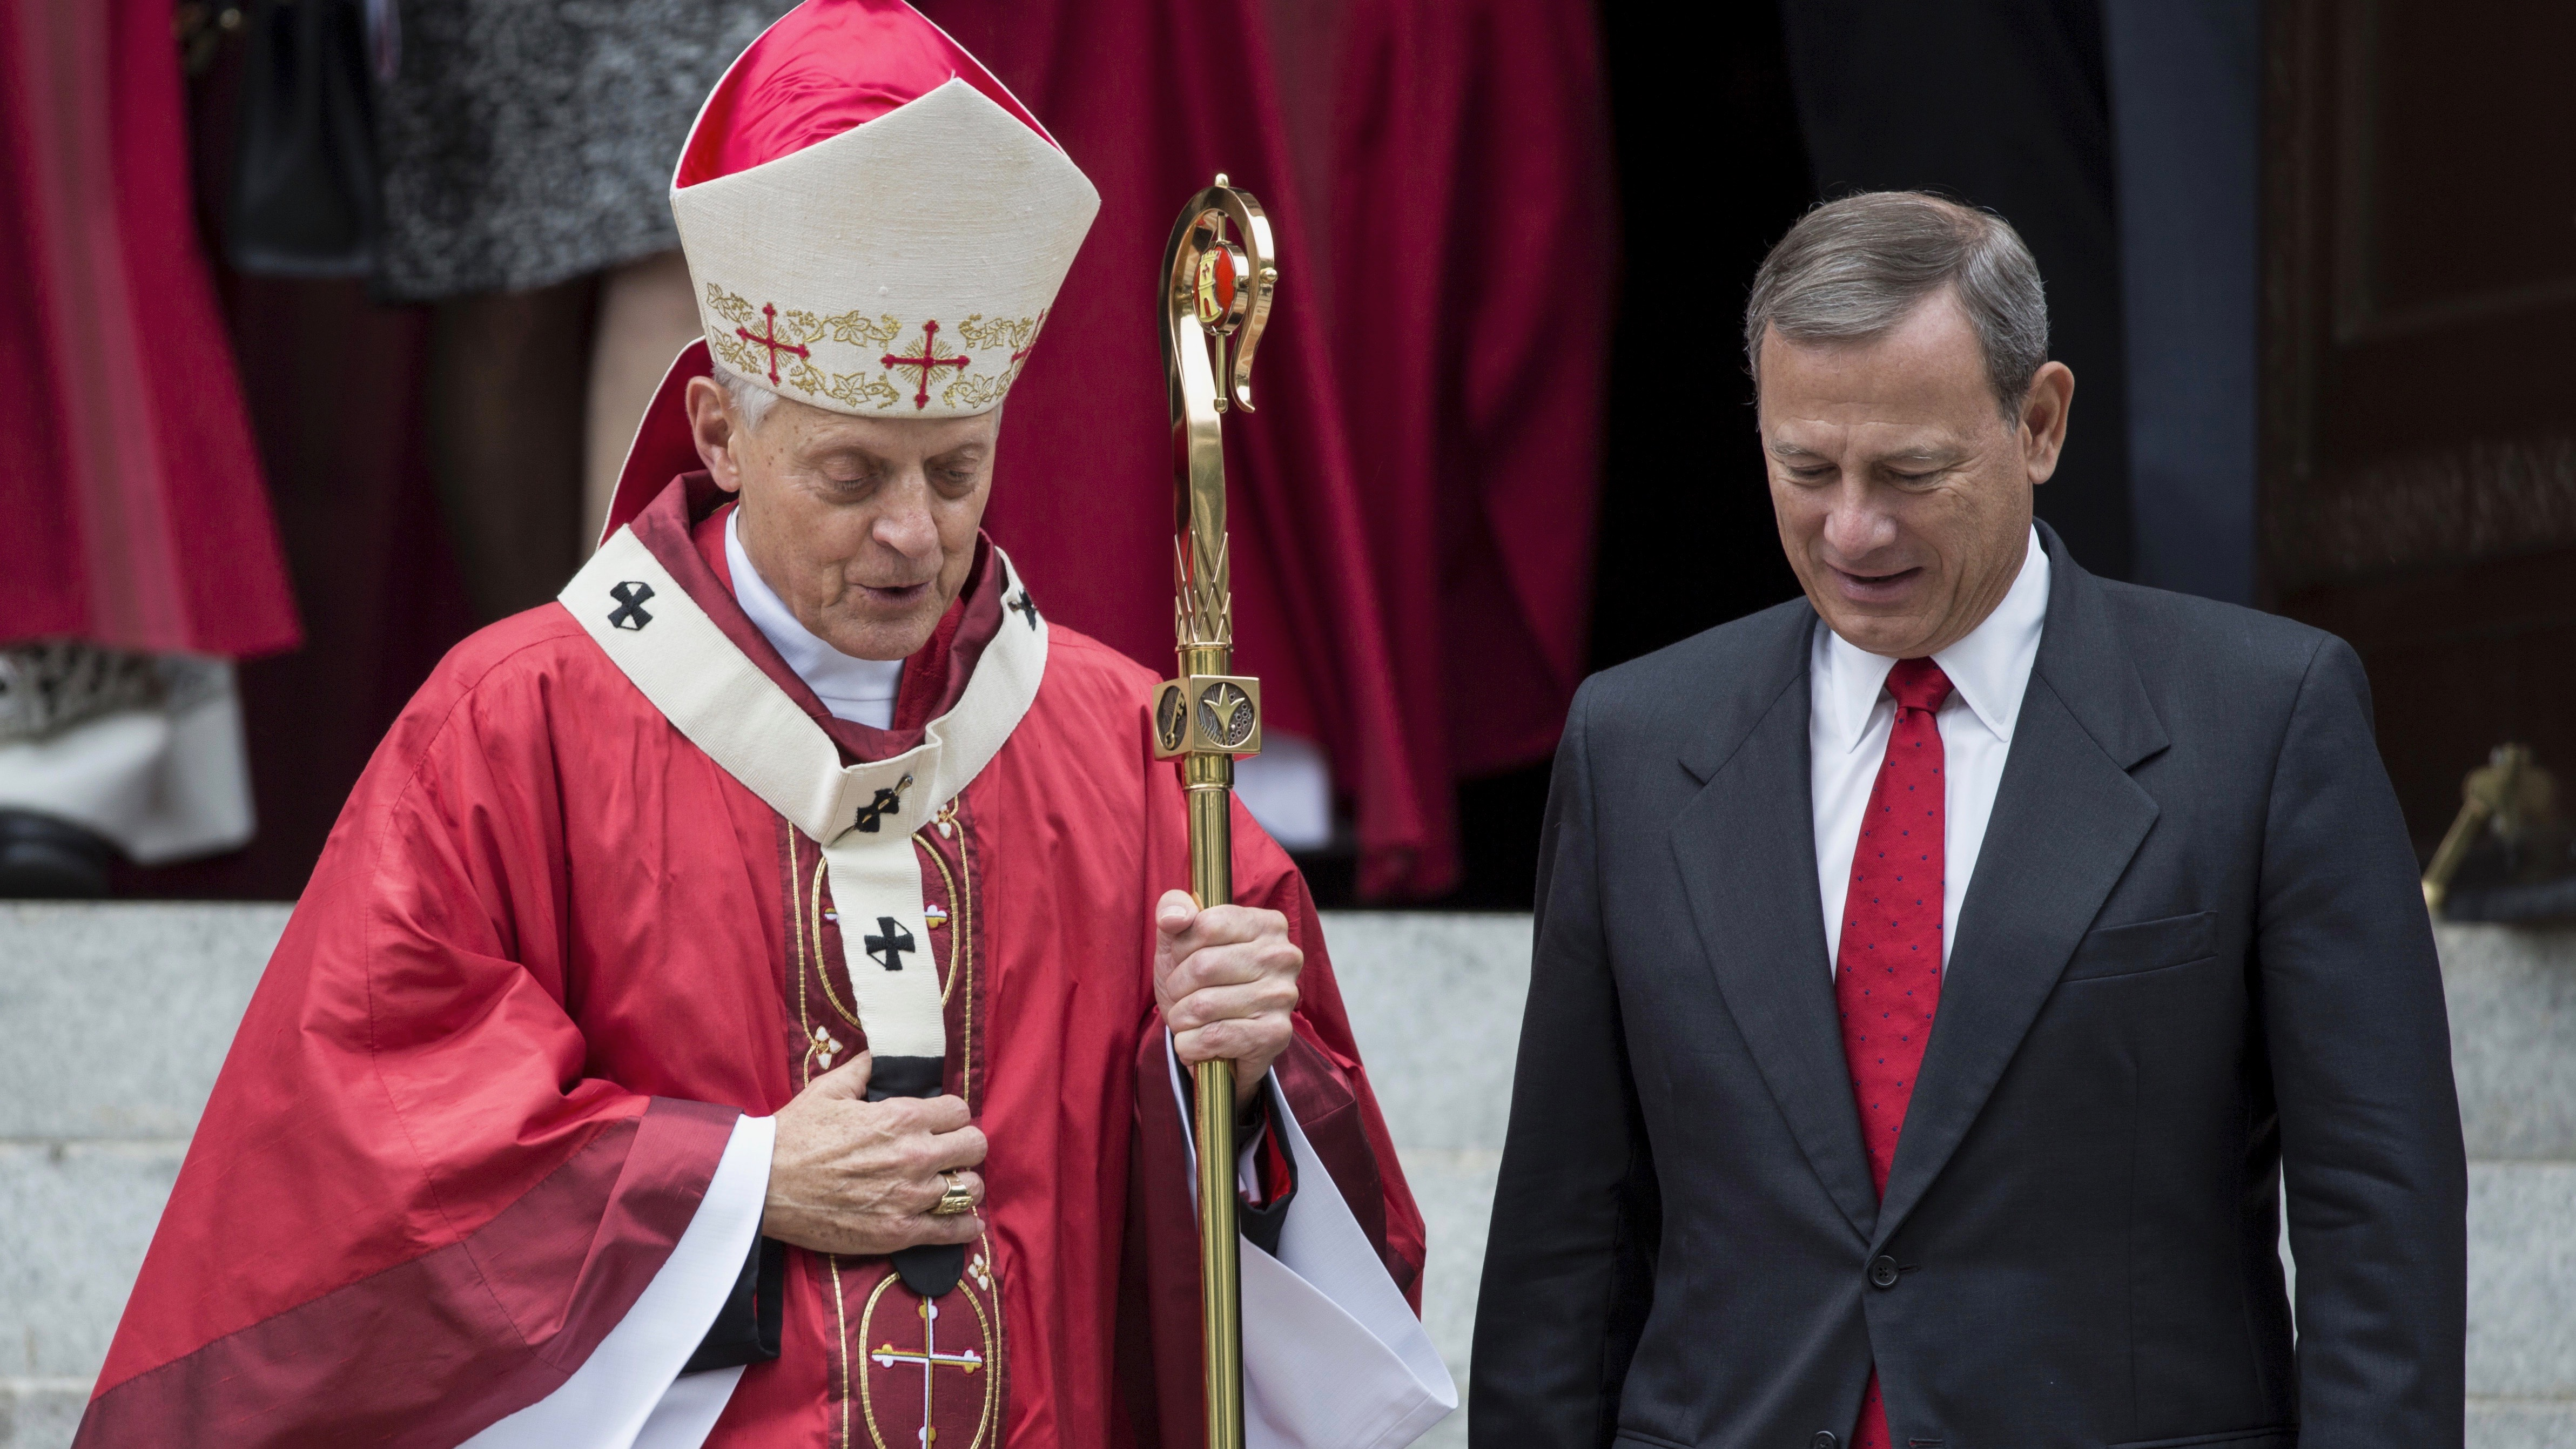 Supreme Court Justice John Roberts (R) speaks with Cardinal Donald Wuerl (L), archbishop of Washington on October 4, 2015.